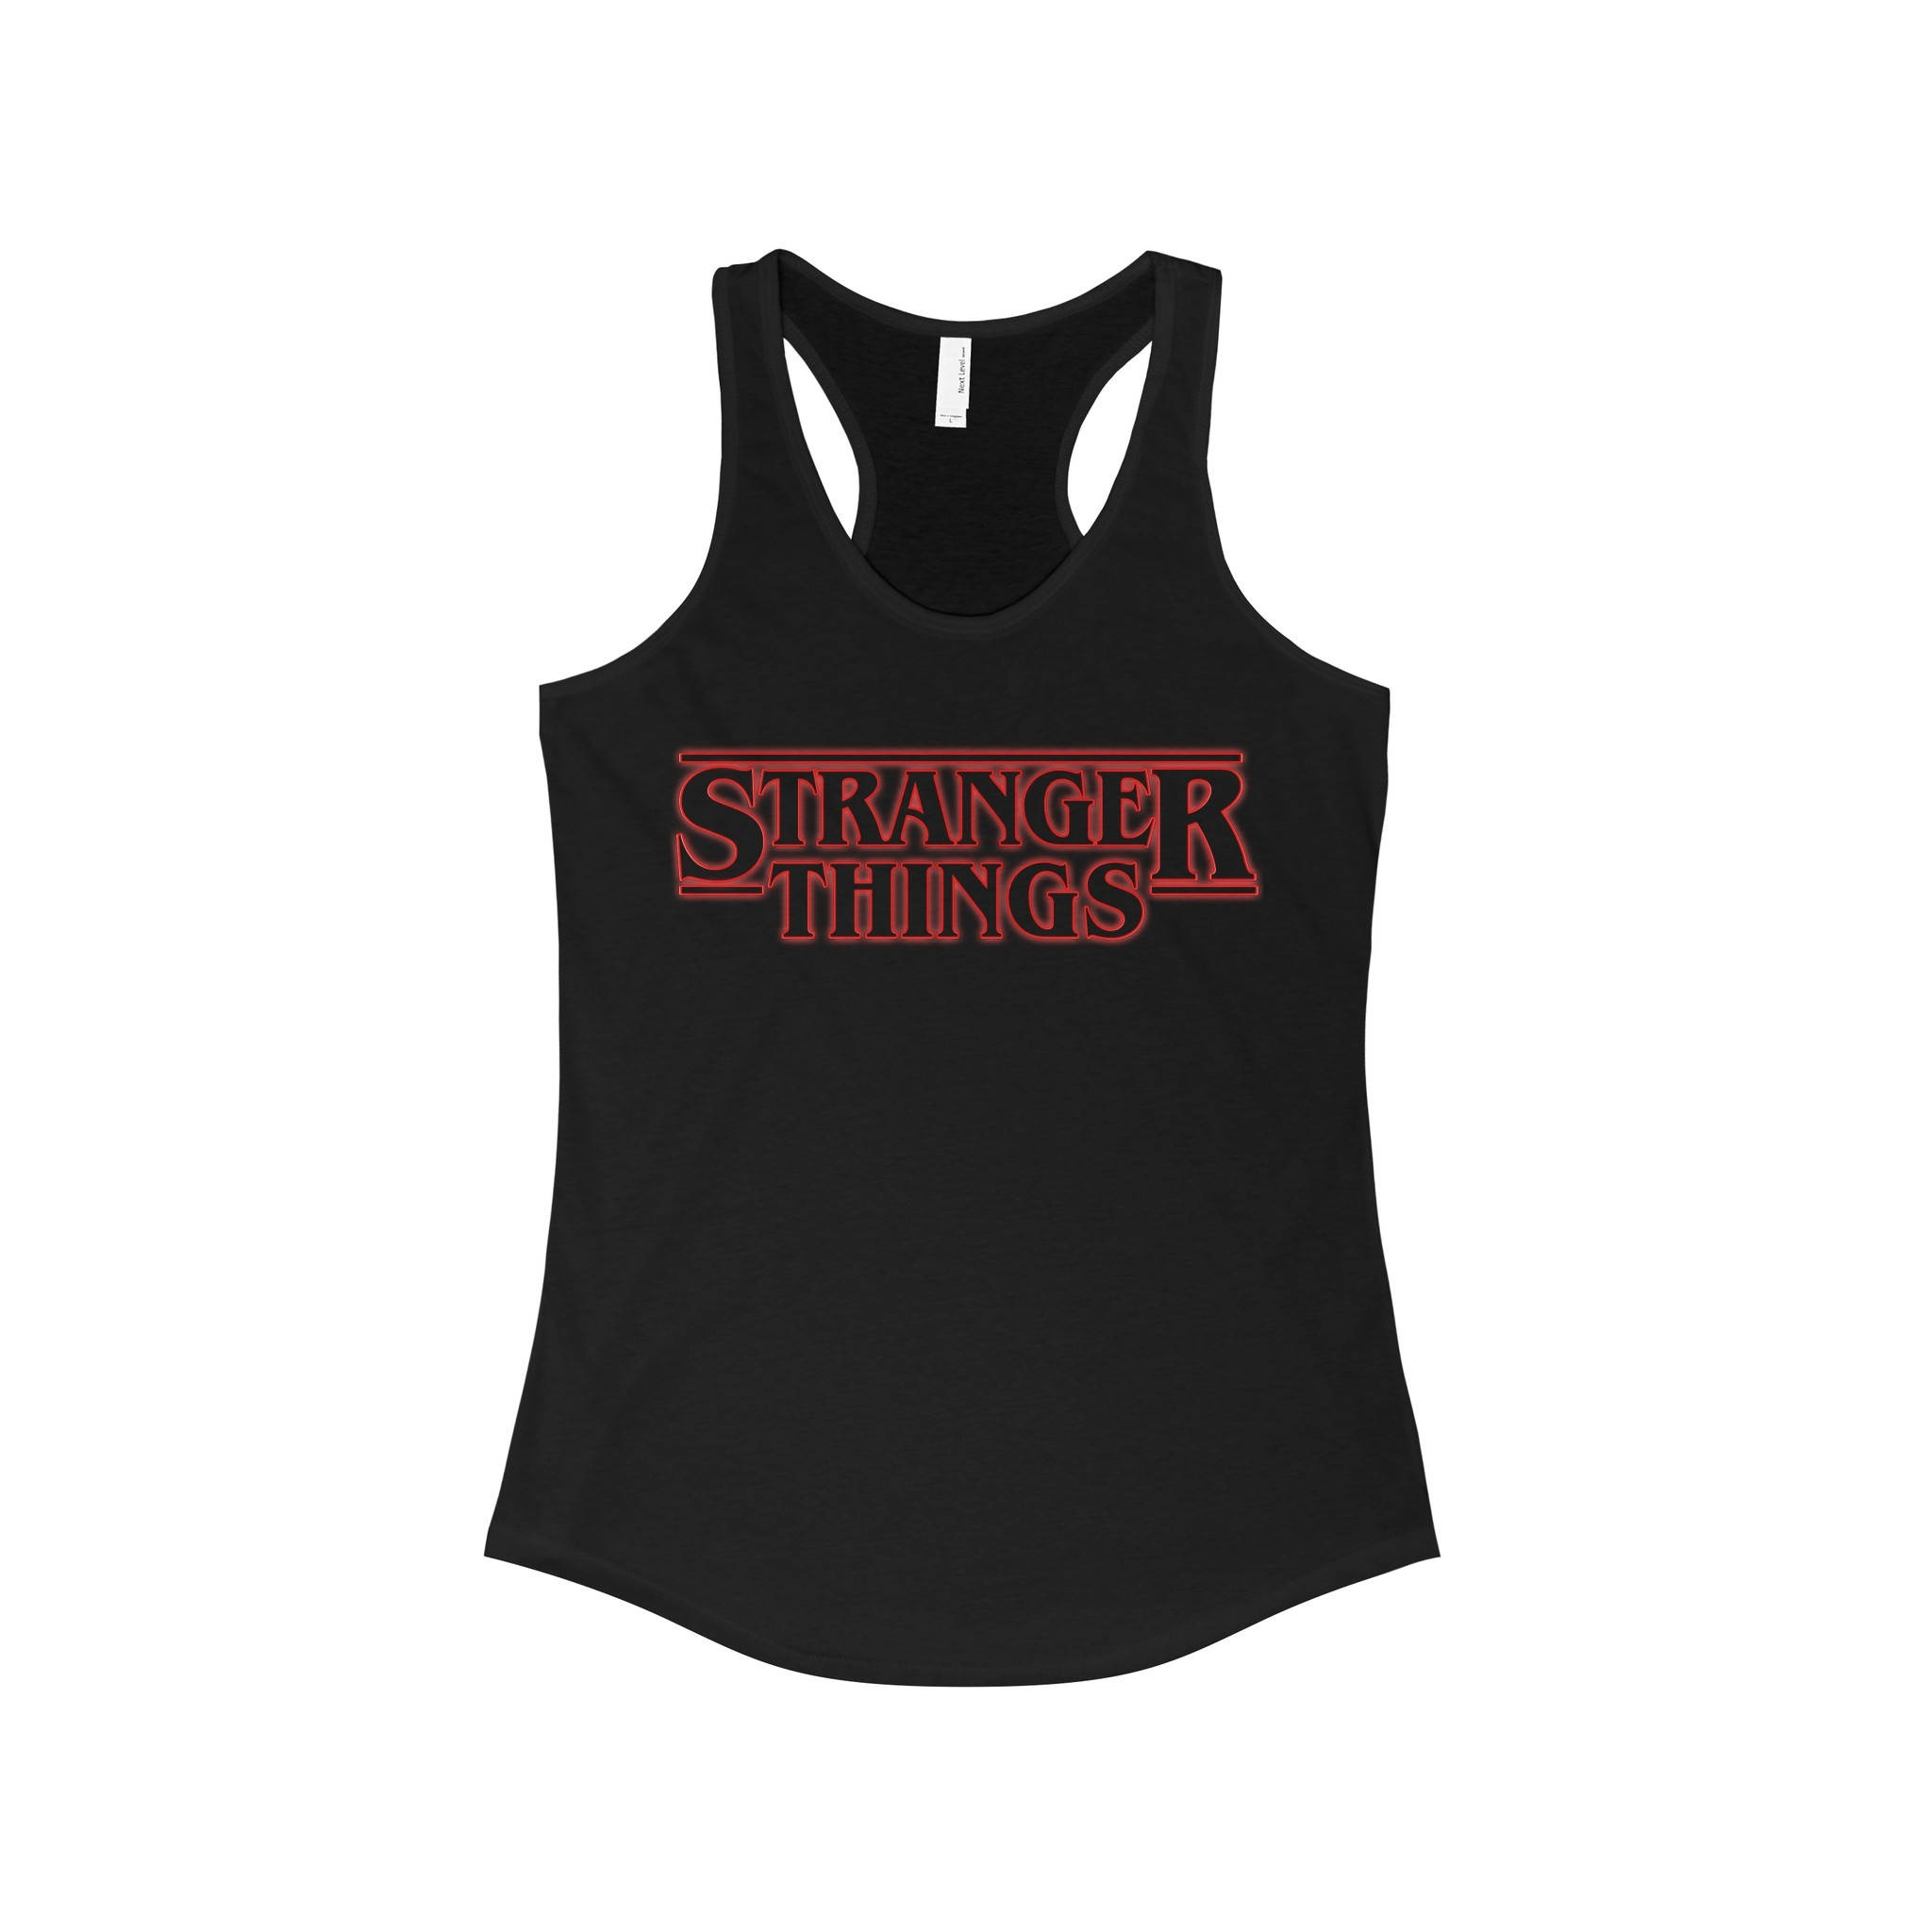 Women's Casual Clothing STRANGER THINGS Sleeveless   Tanks     Tops   Girl Cool Street Cotton   Tops   Graphic Tee Racerback   Tank     Top   Tees